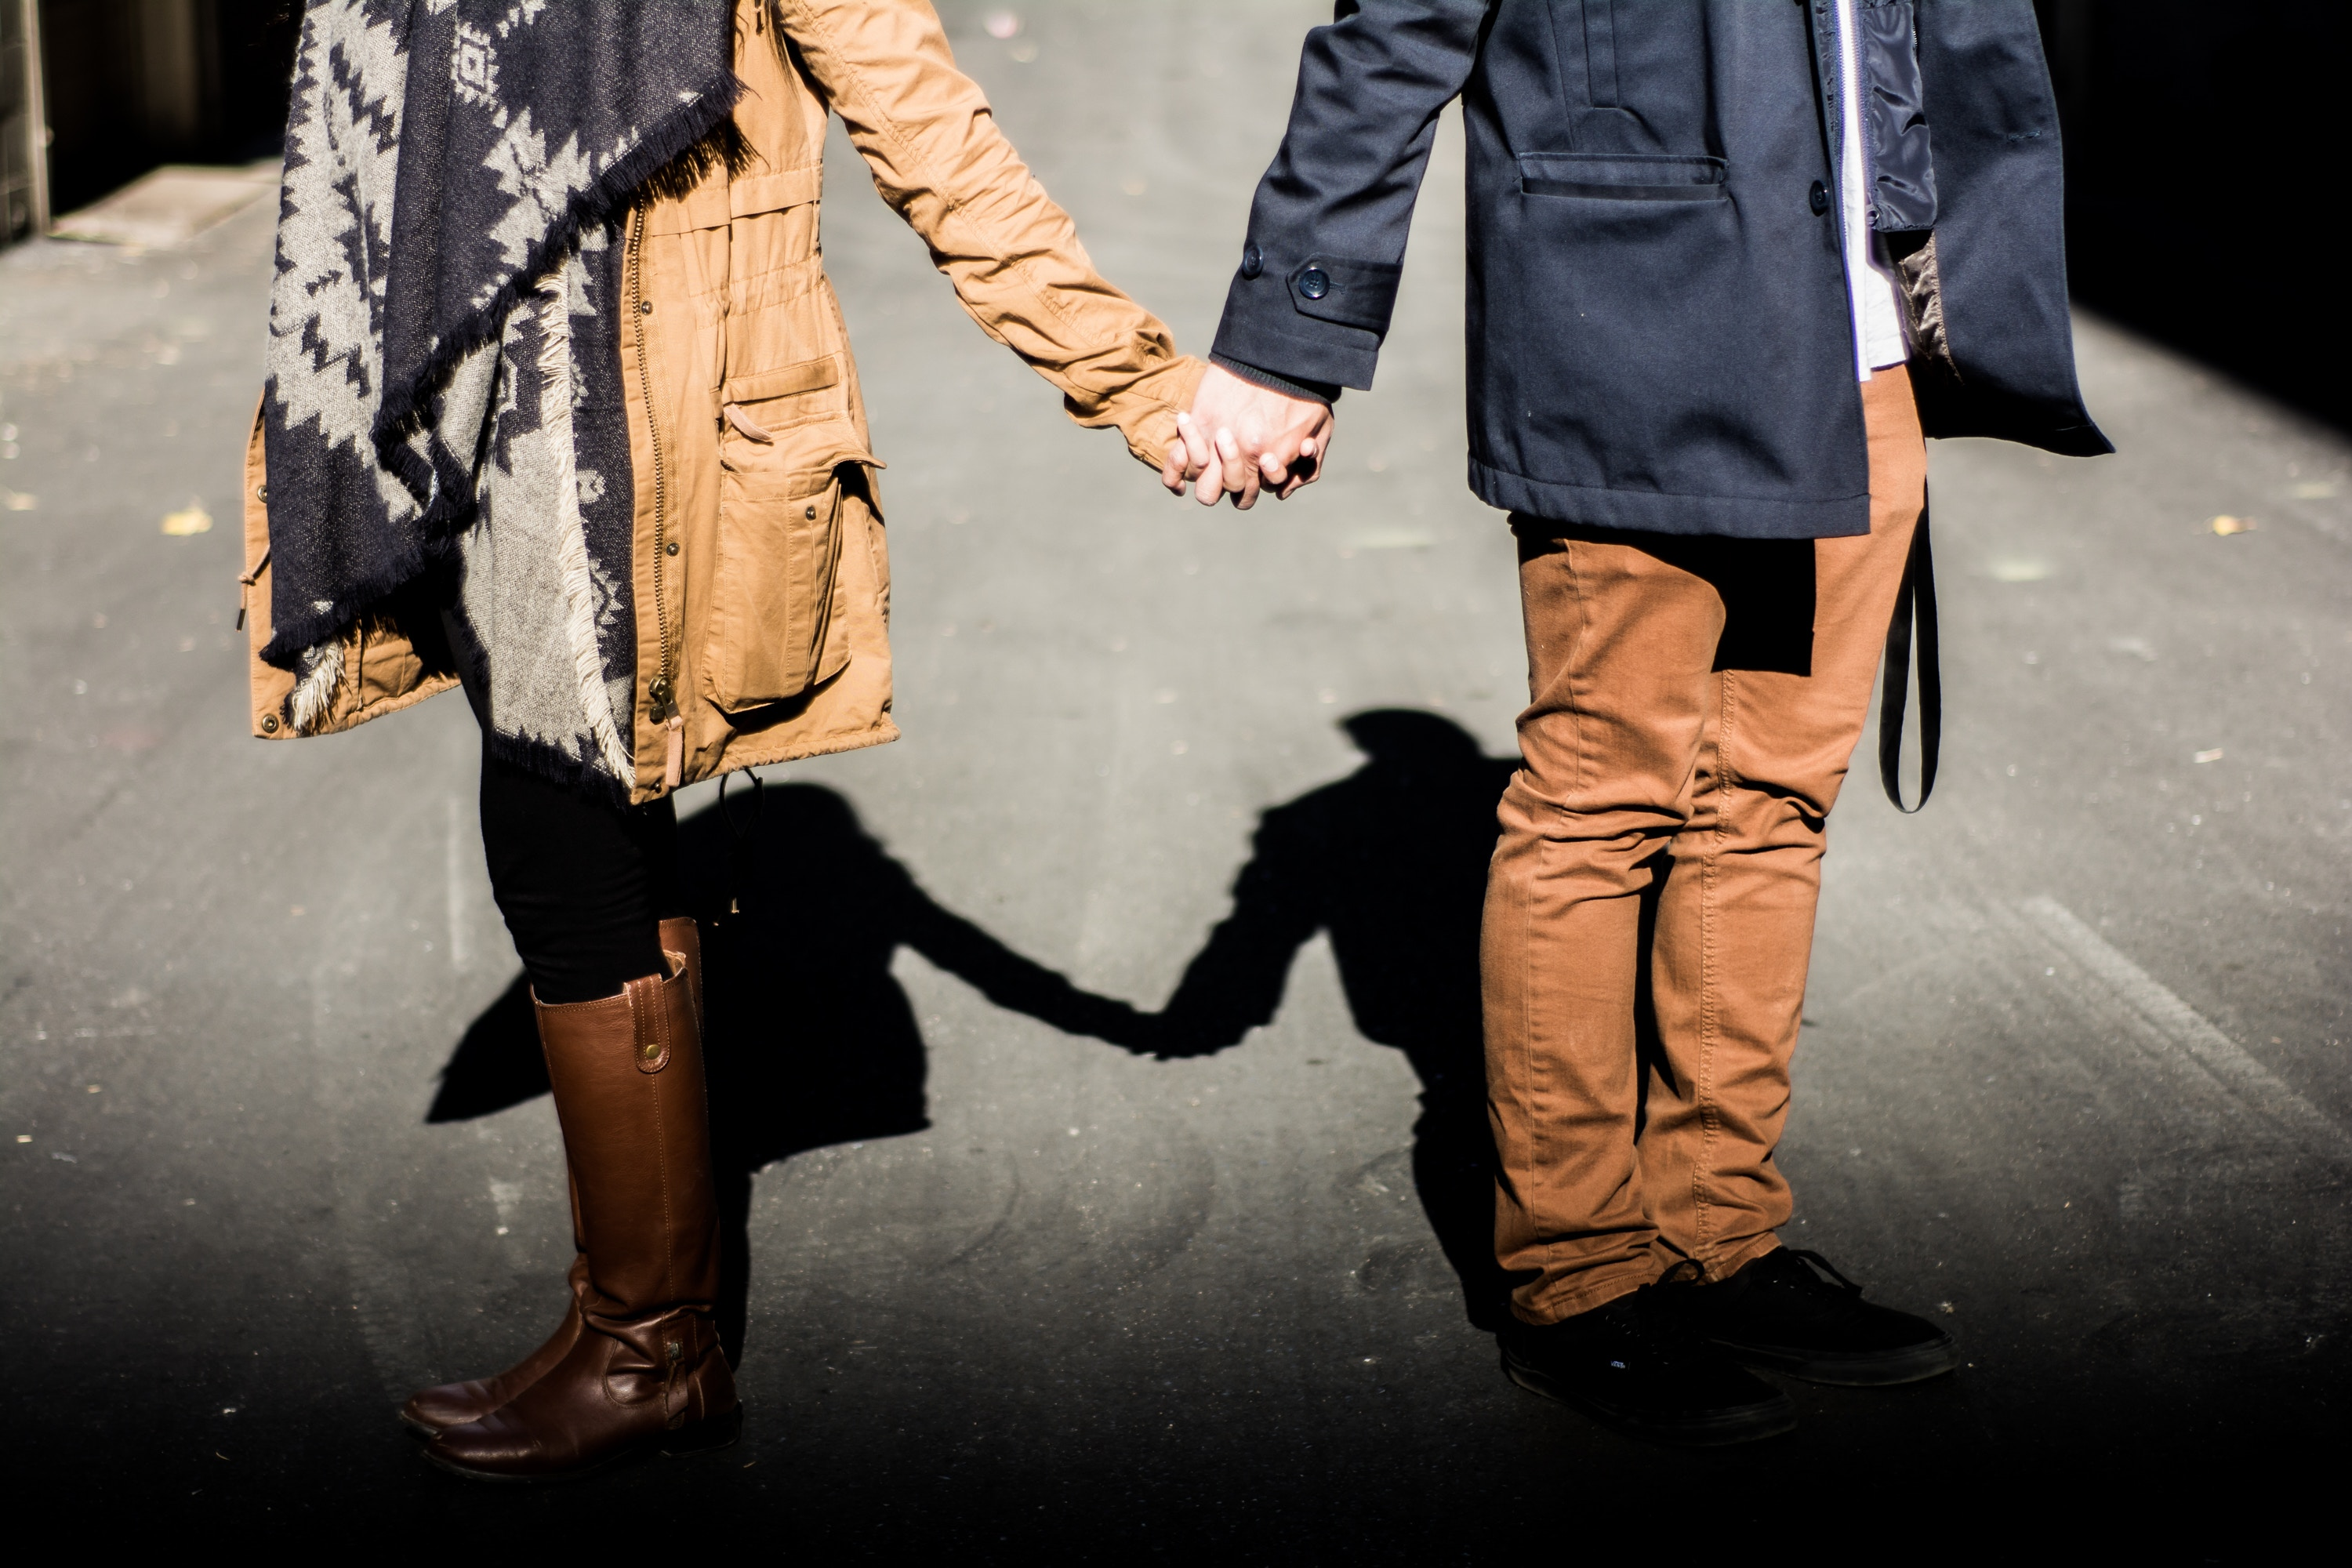 Couple walking and holding hands